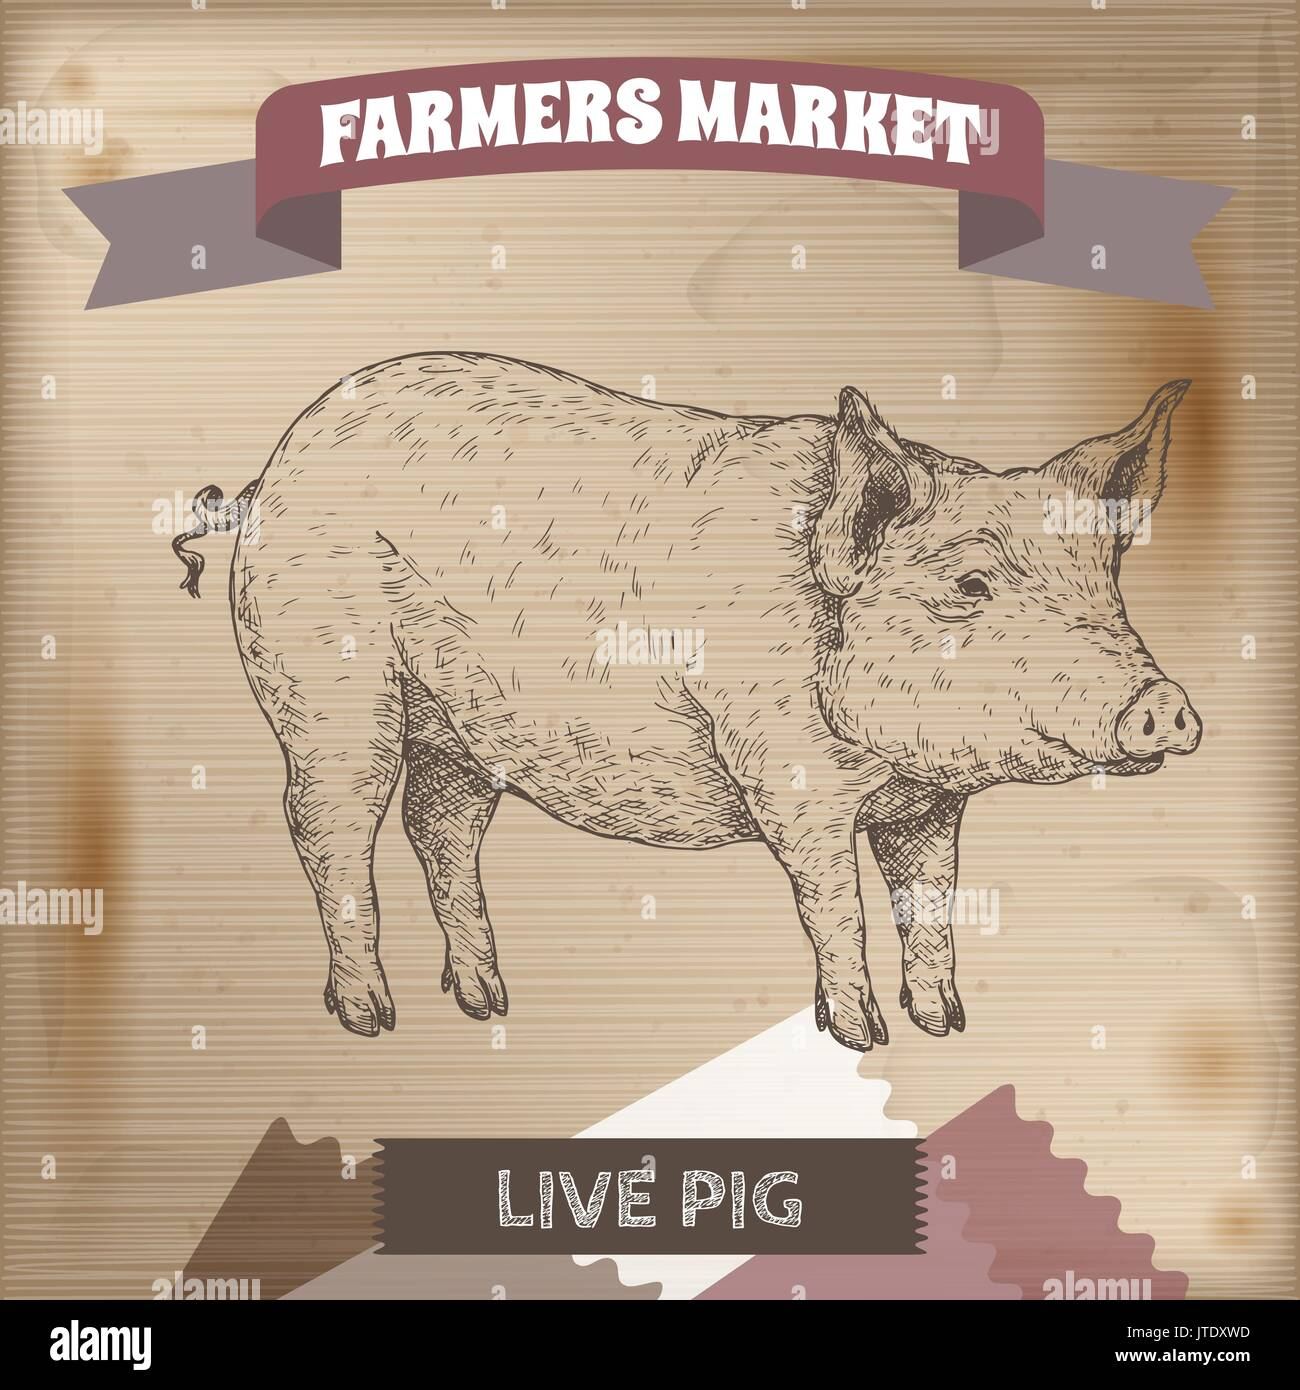 Vintage farmers market label with live pig. - Stock Vector